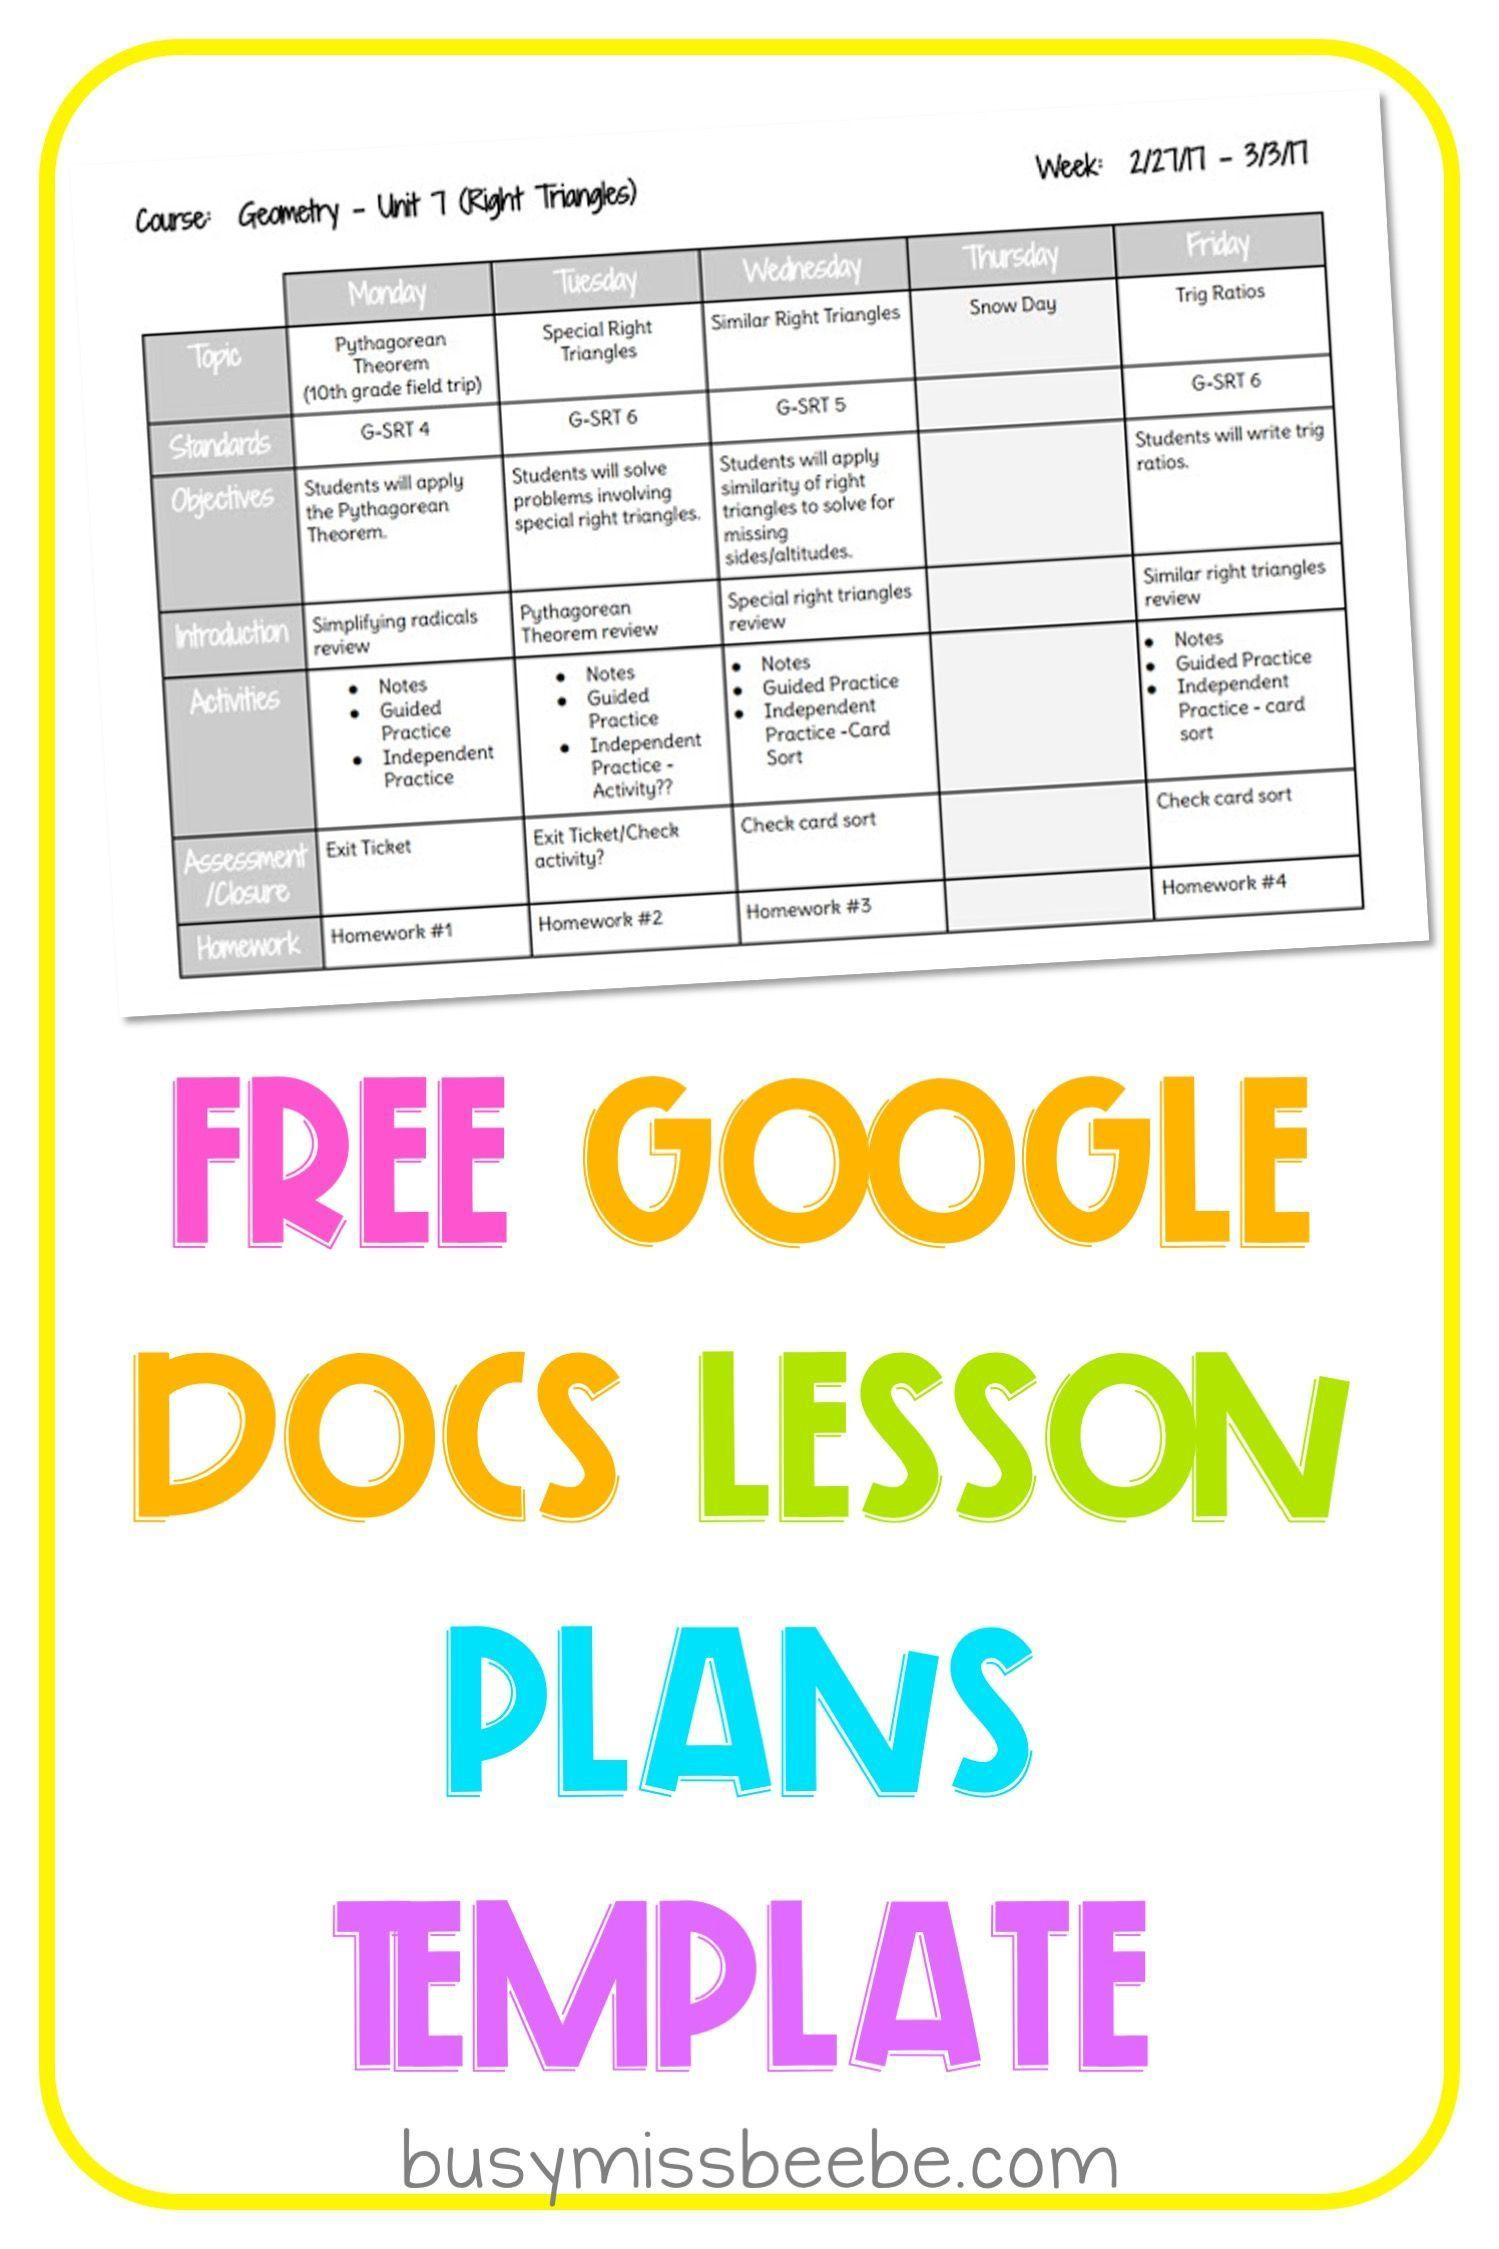 000 Best Weekly Lesson Plan Template Google Doc Free High Resolution Full